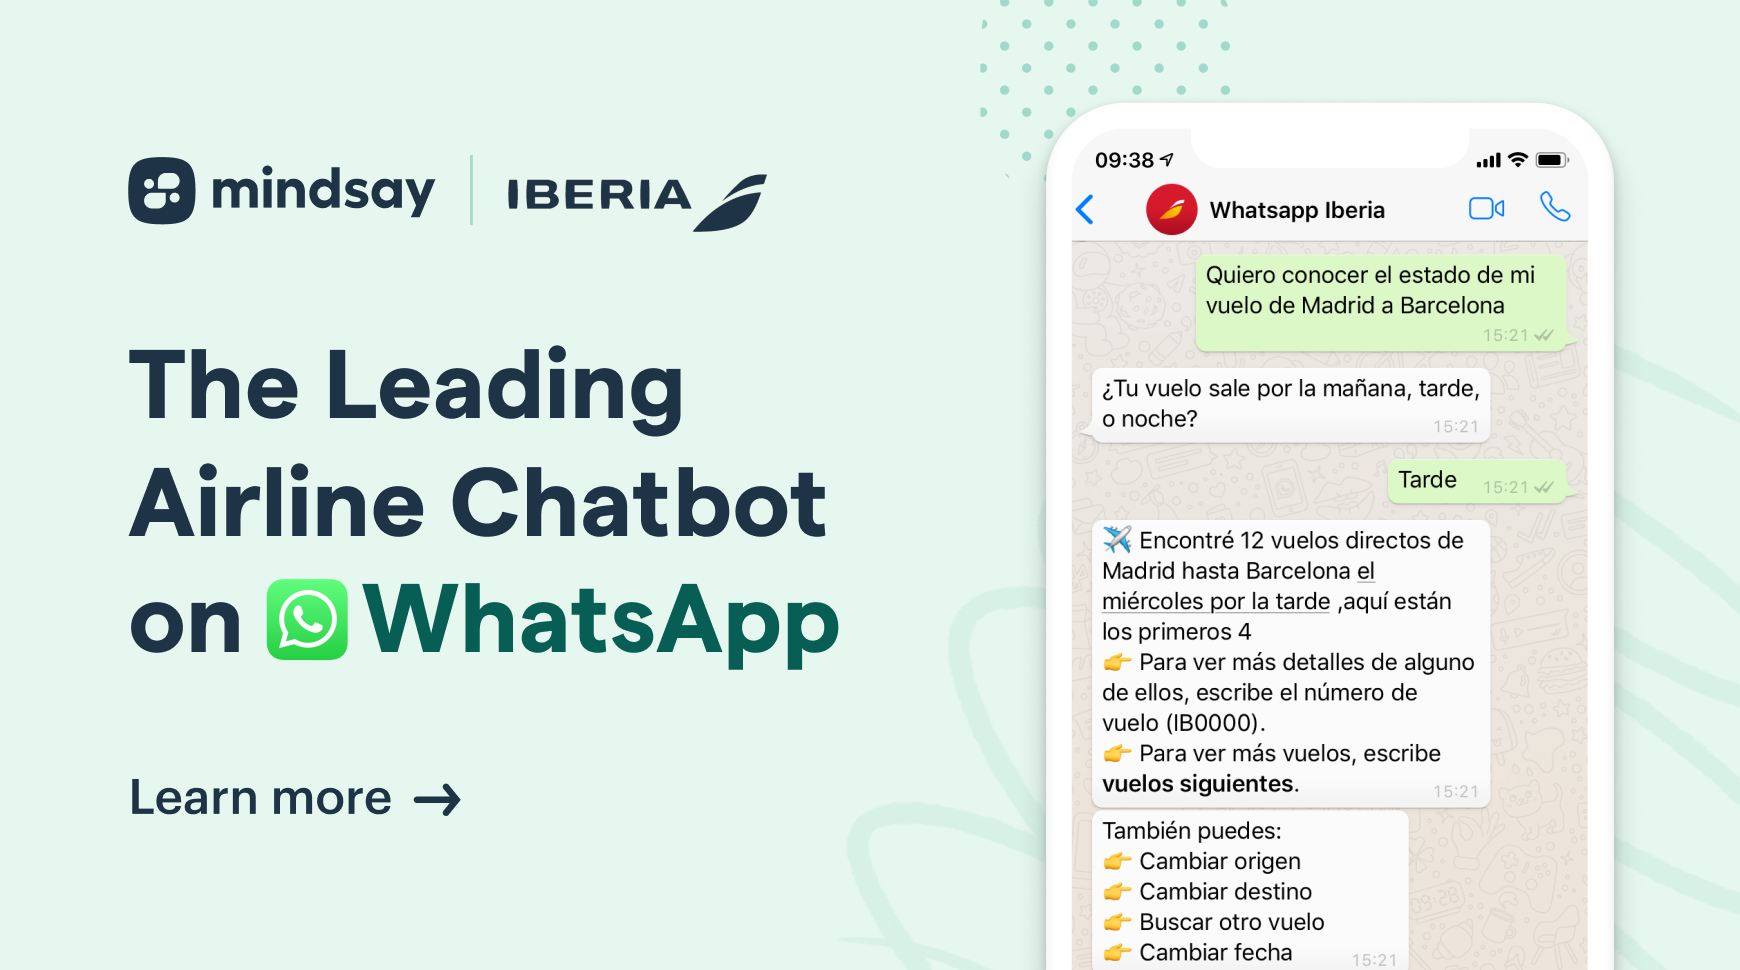 WhatsApp chatbots have touched down in the airline industry